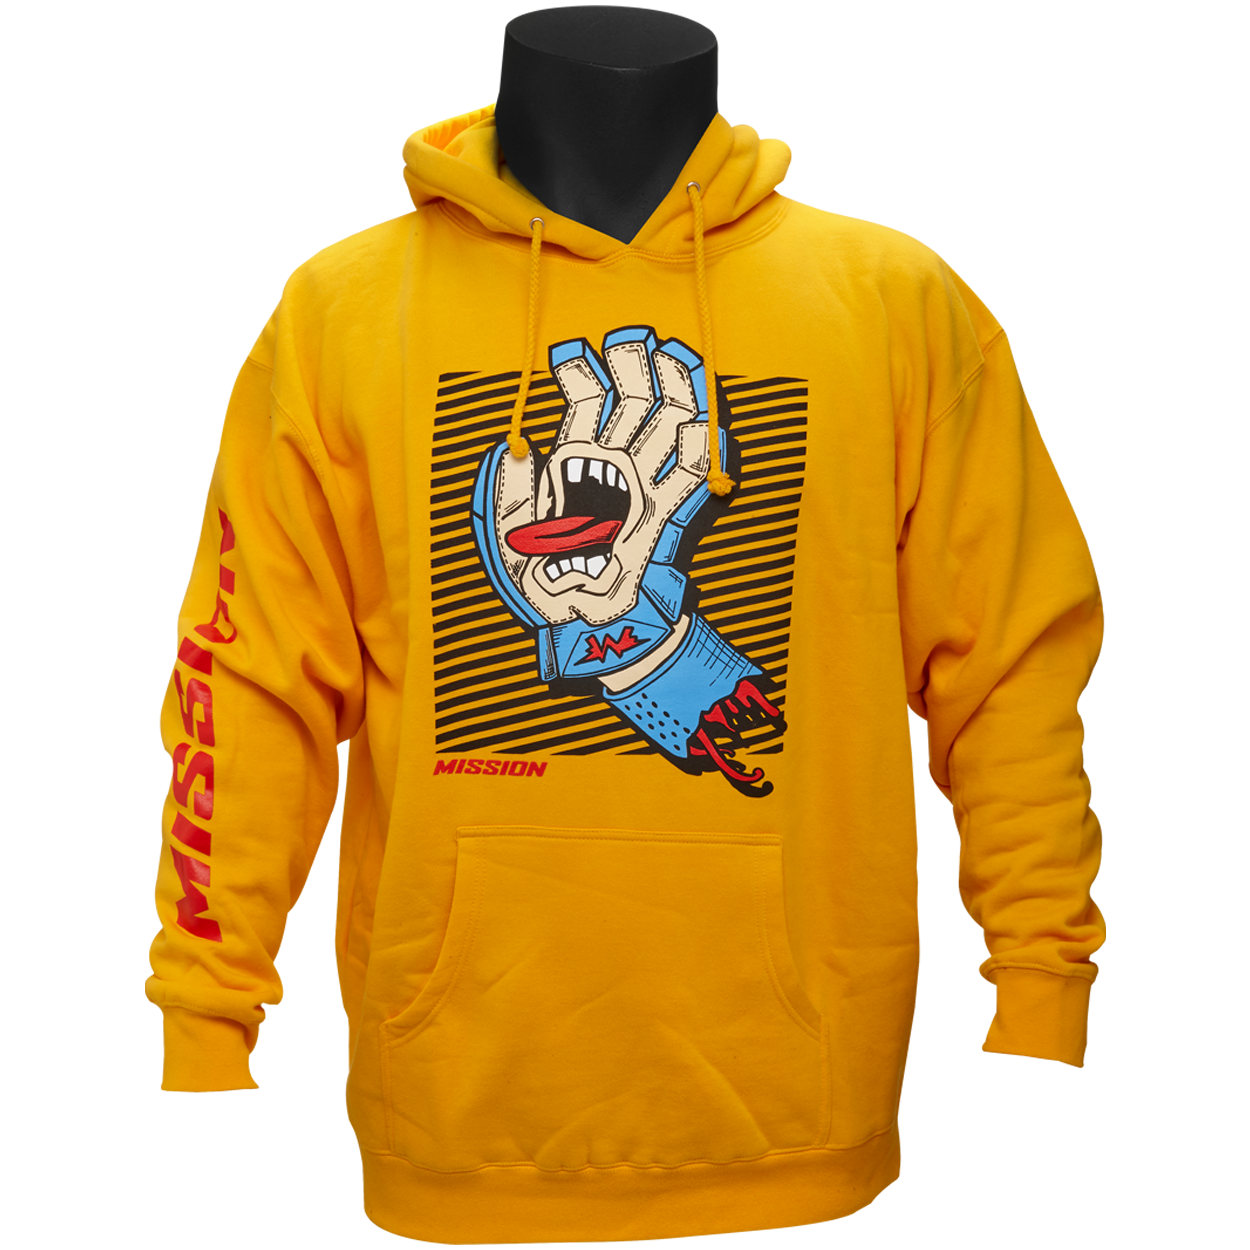 MISSION Screaming Glove Hoodie Senior,,Размер M